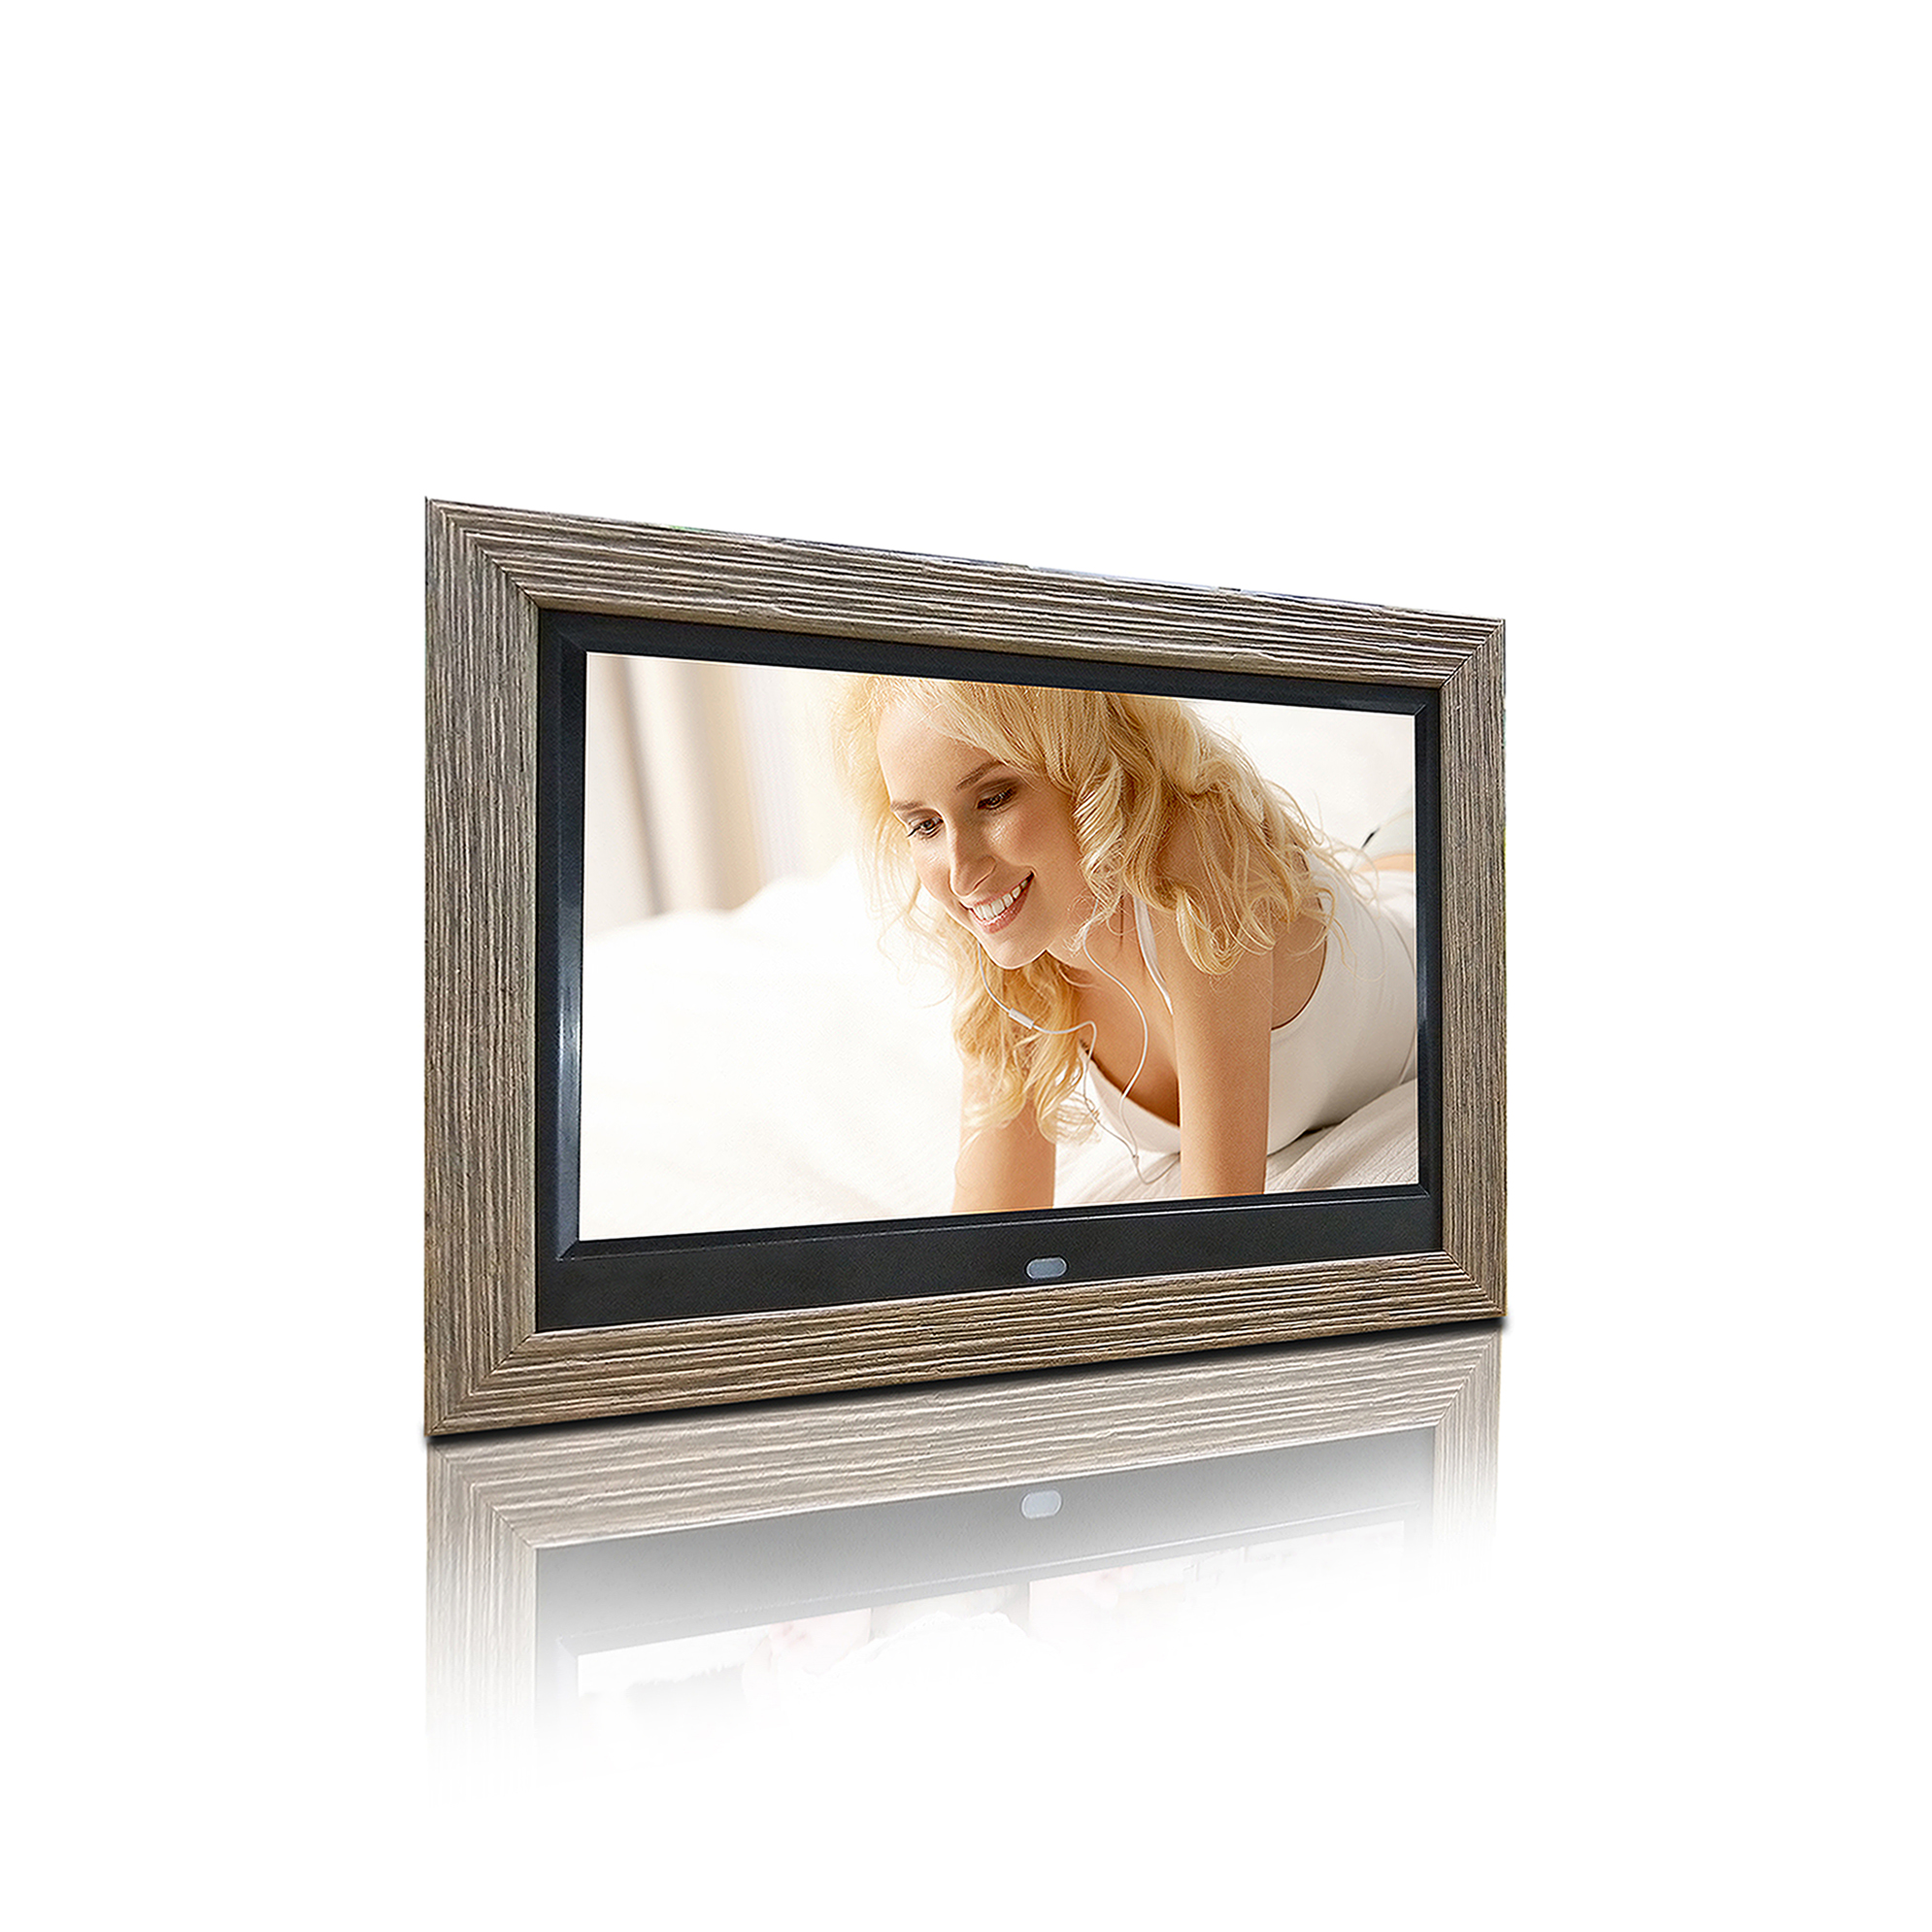 10 inch customized digital photo frame with wood frame auto play video picture IPS screen 1280X800